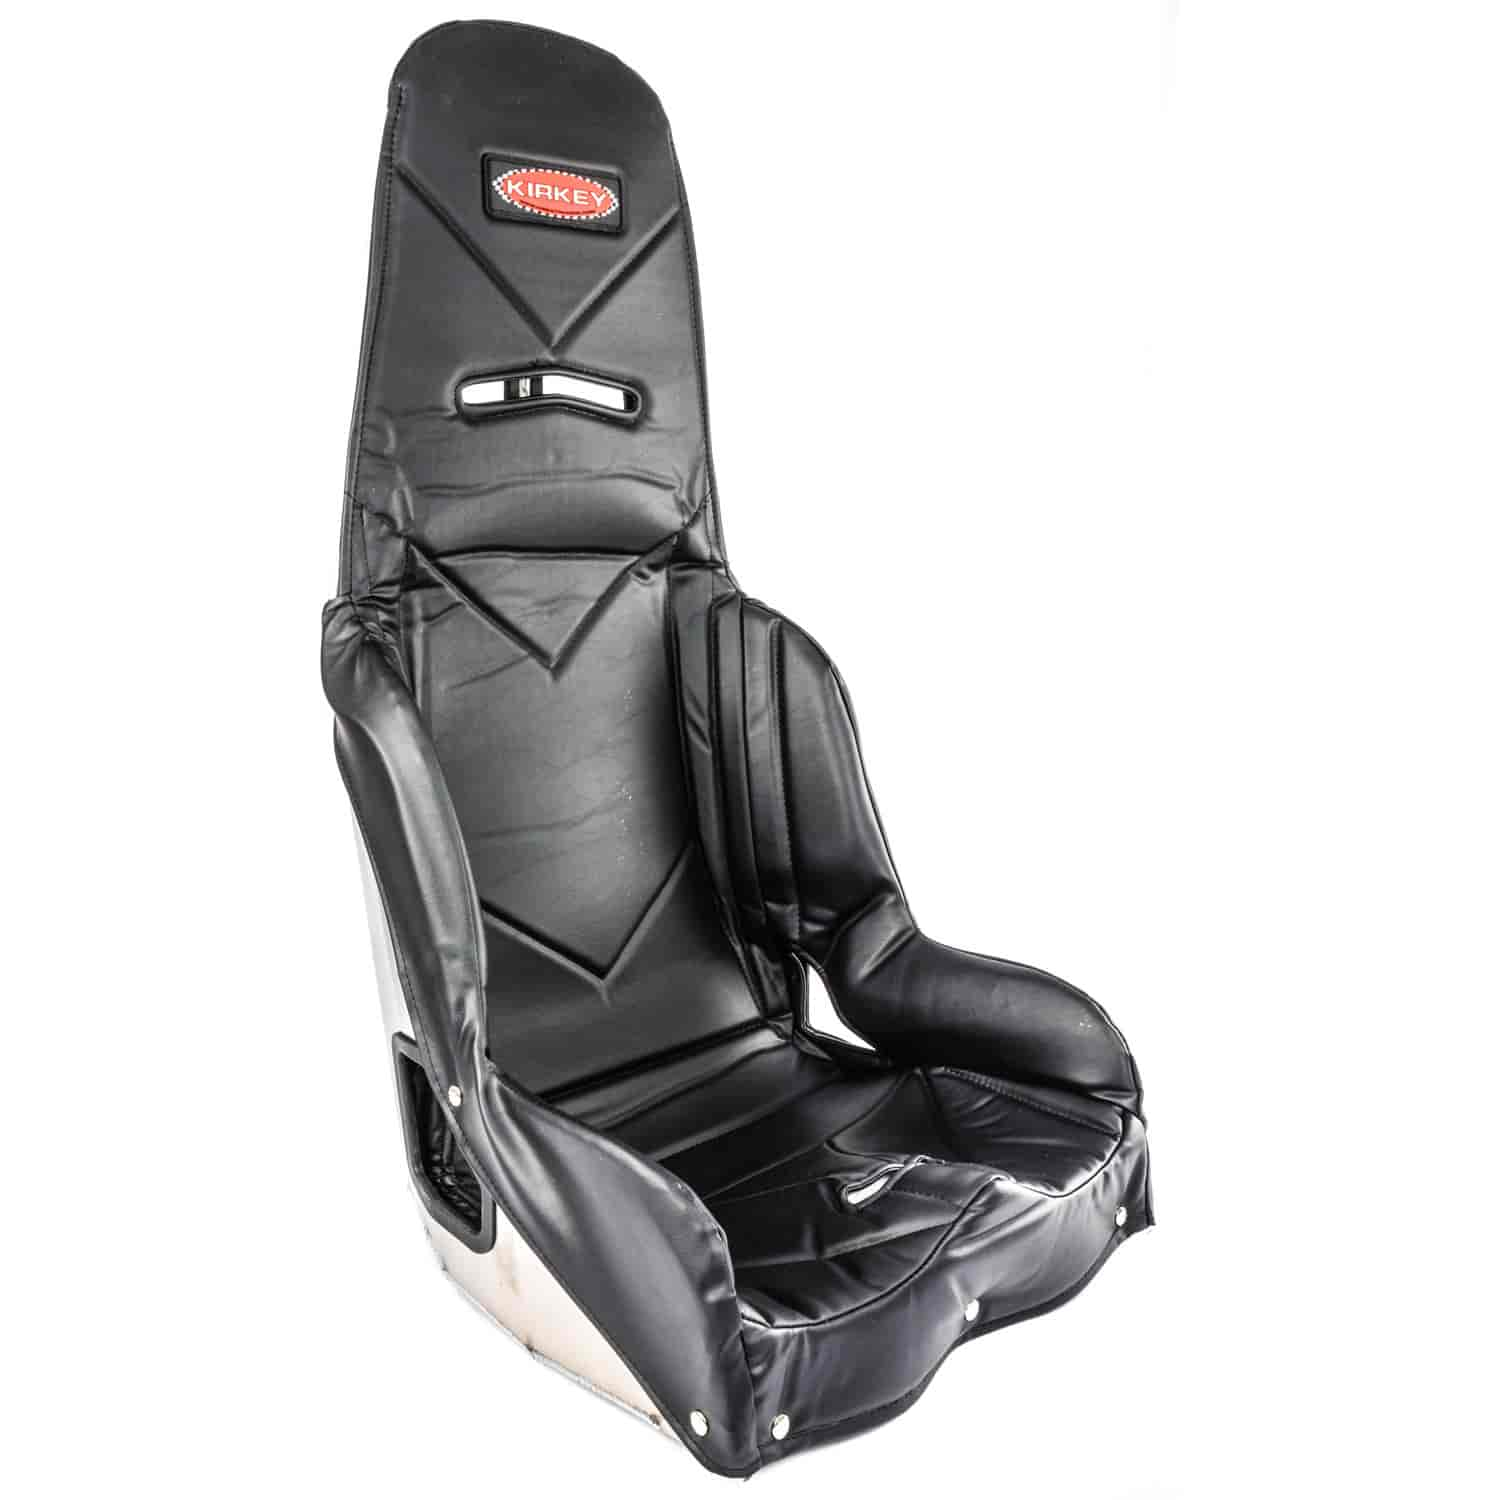 Kirkey 41811 - Kirkey Aluminum Pro Street Drag Racing Seats